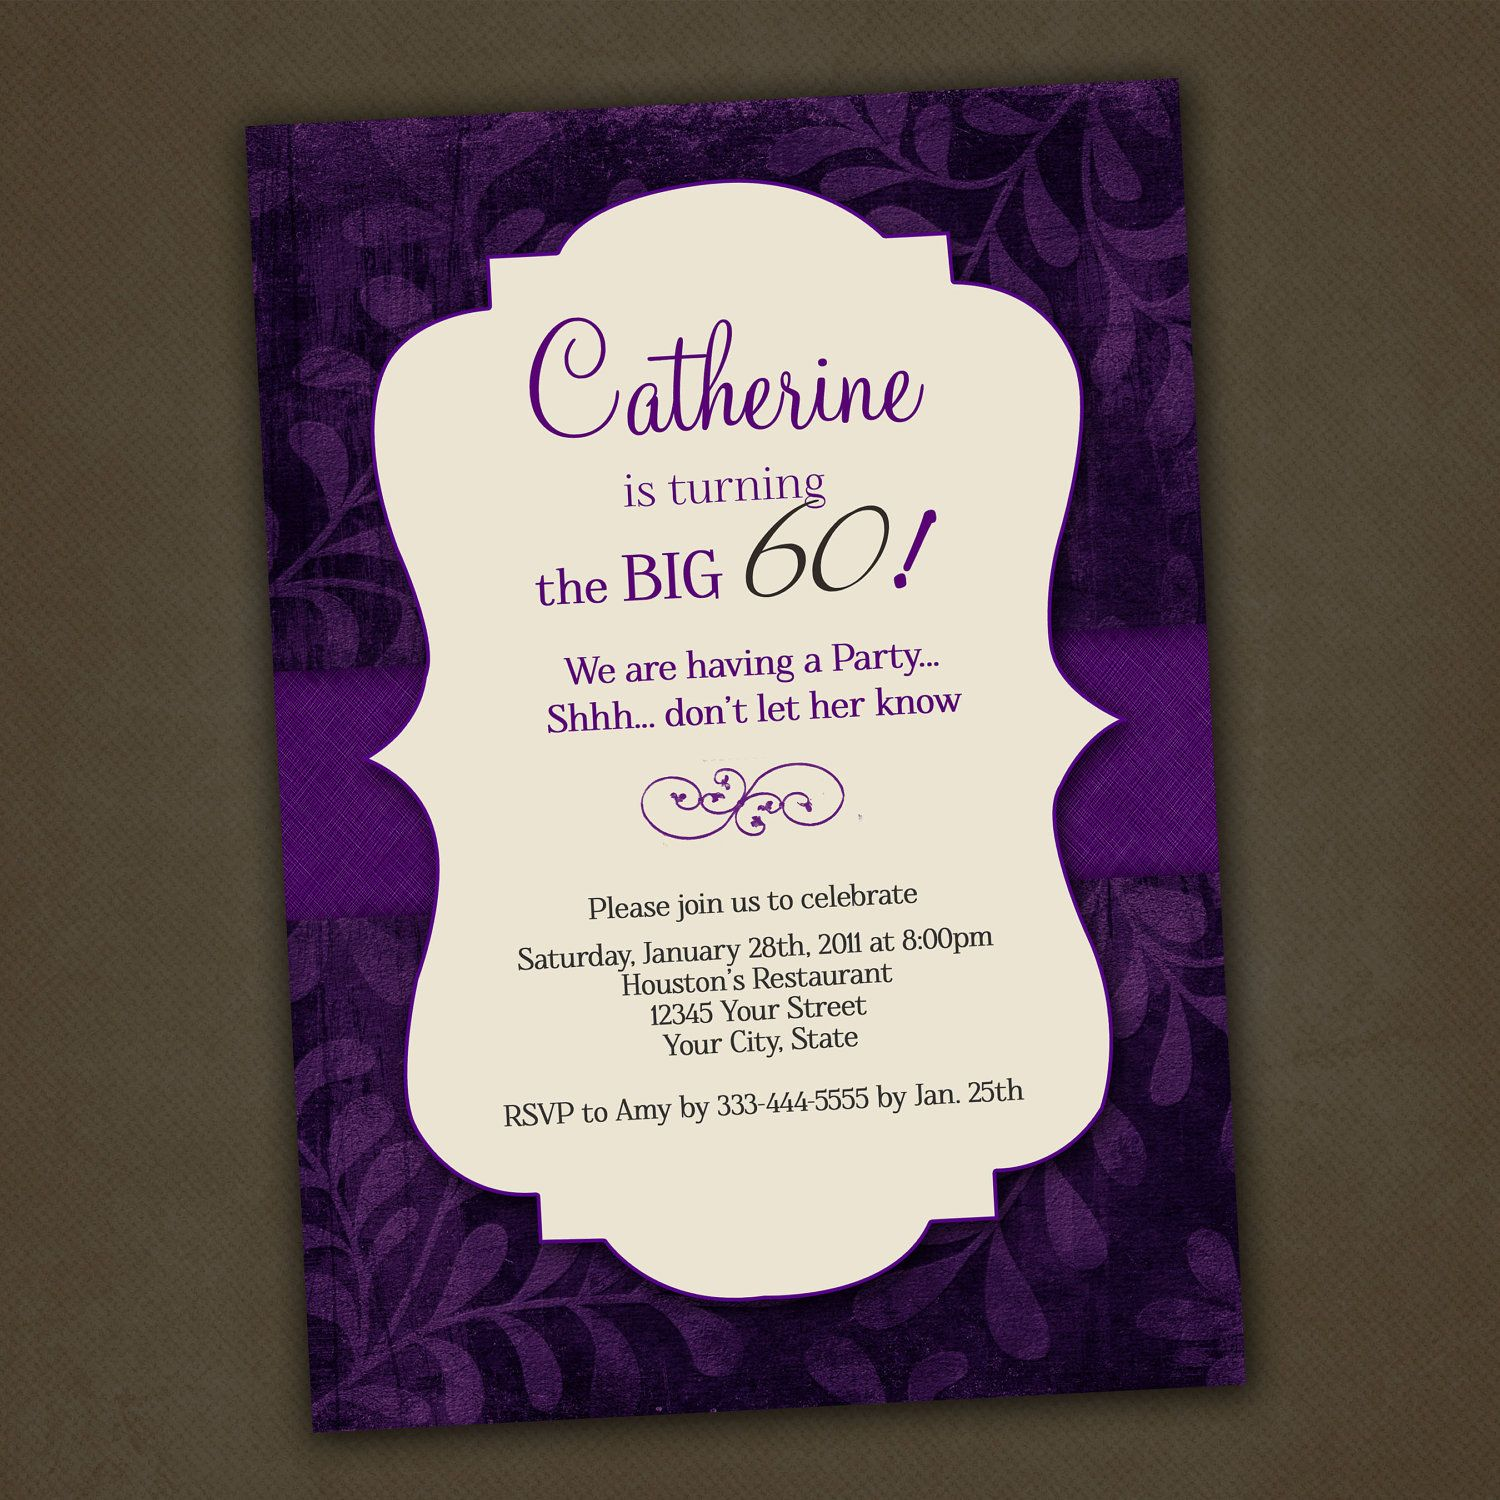 Magnificent 90th birthday tea party invitations birthday party magnificent 90th birthday tea party invitations birthday party invitation staggering 90th birthday tea party invitations magnificent stopboris